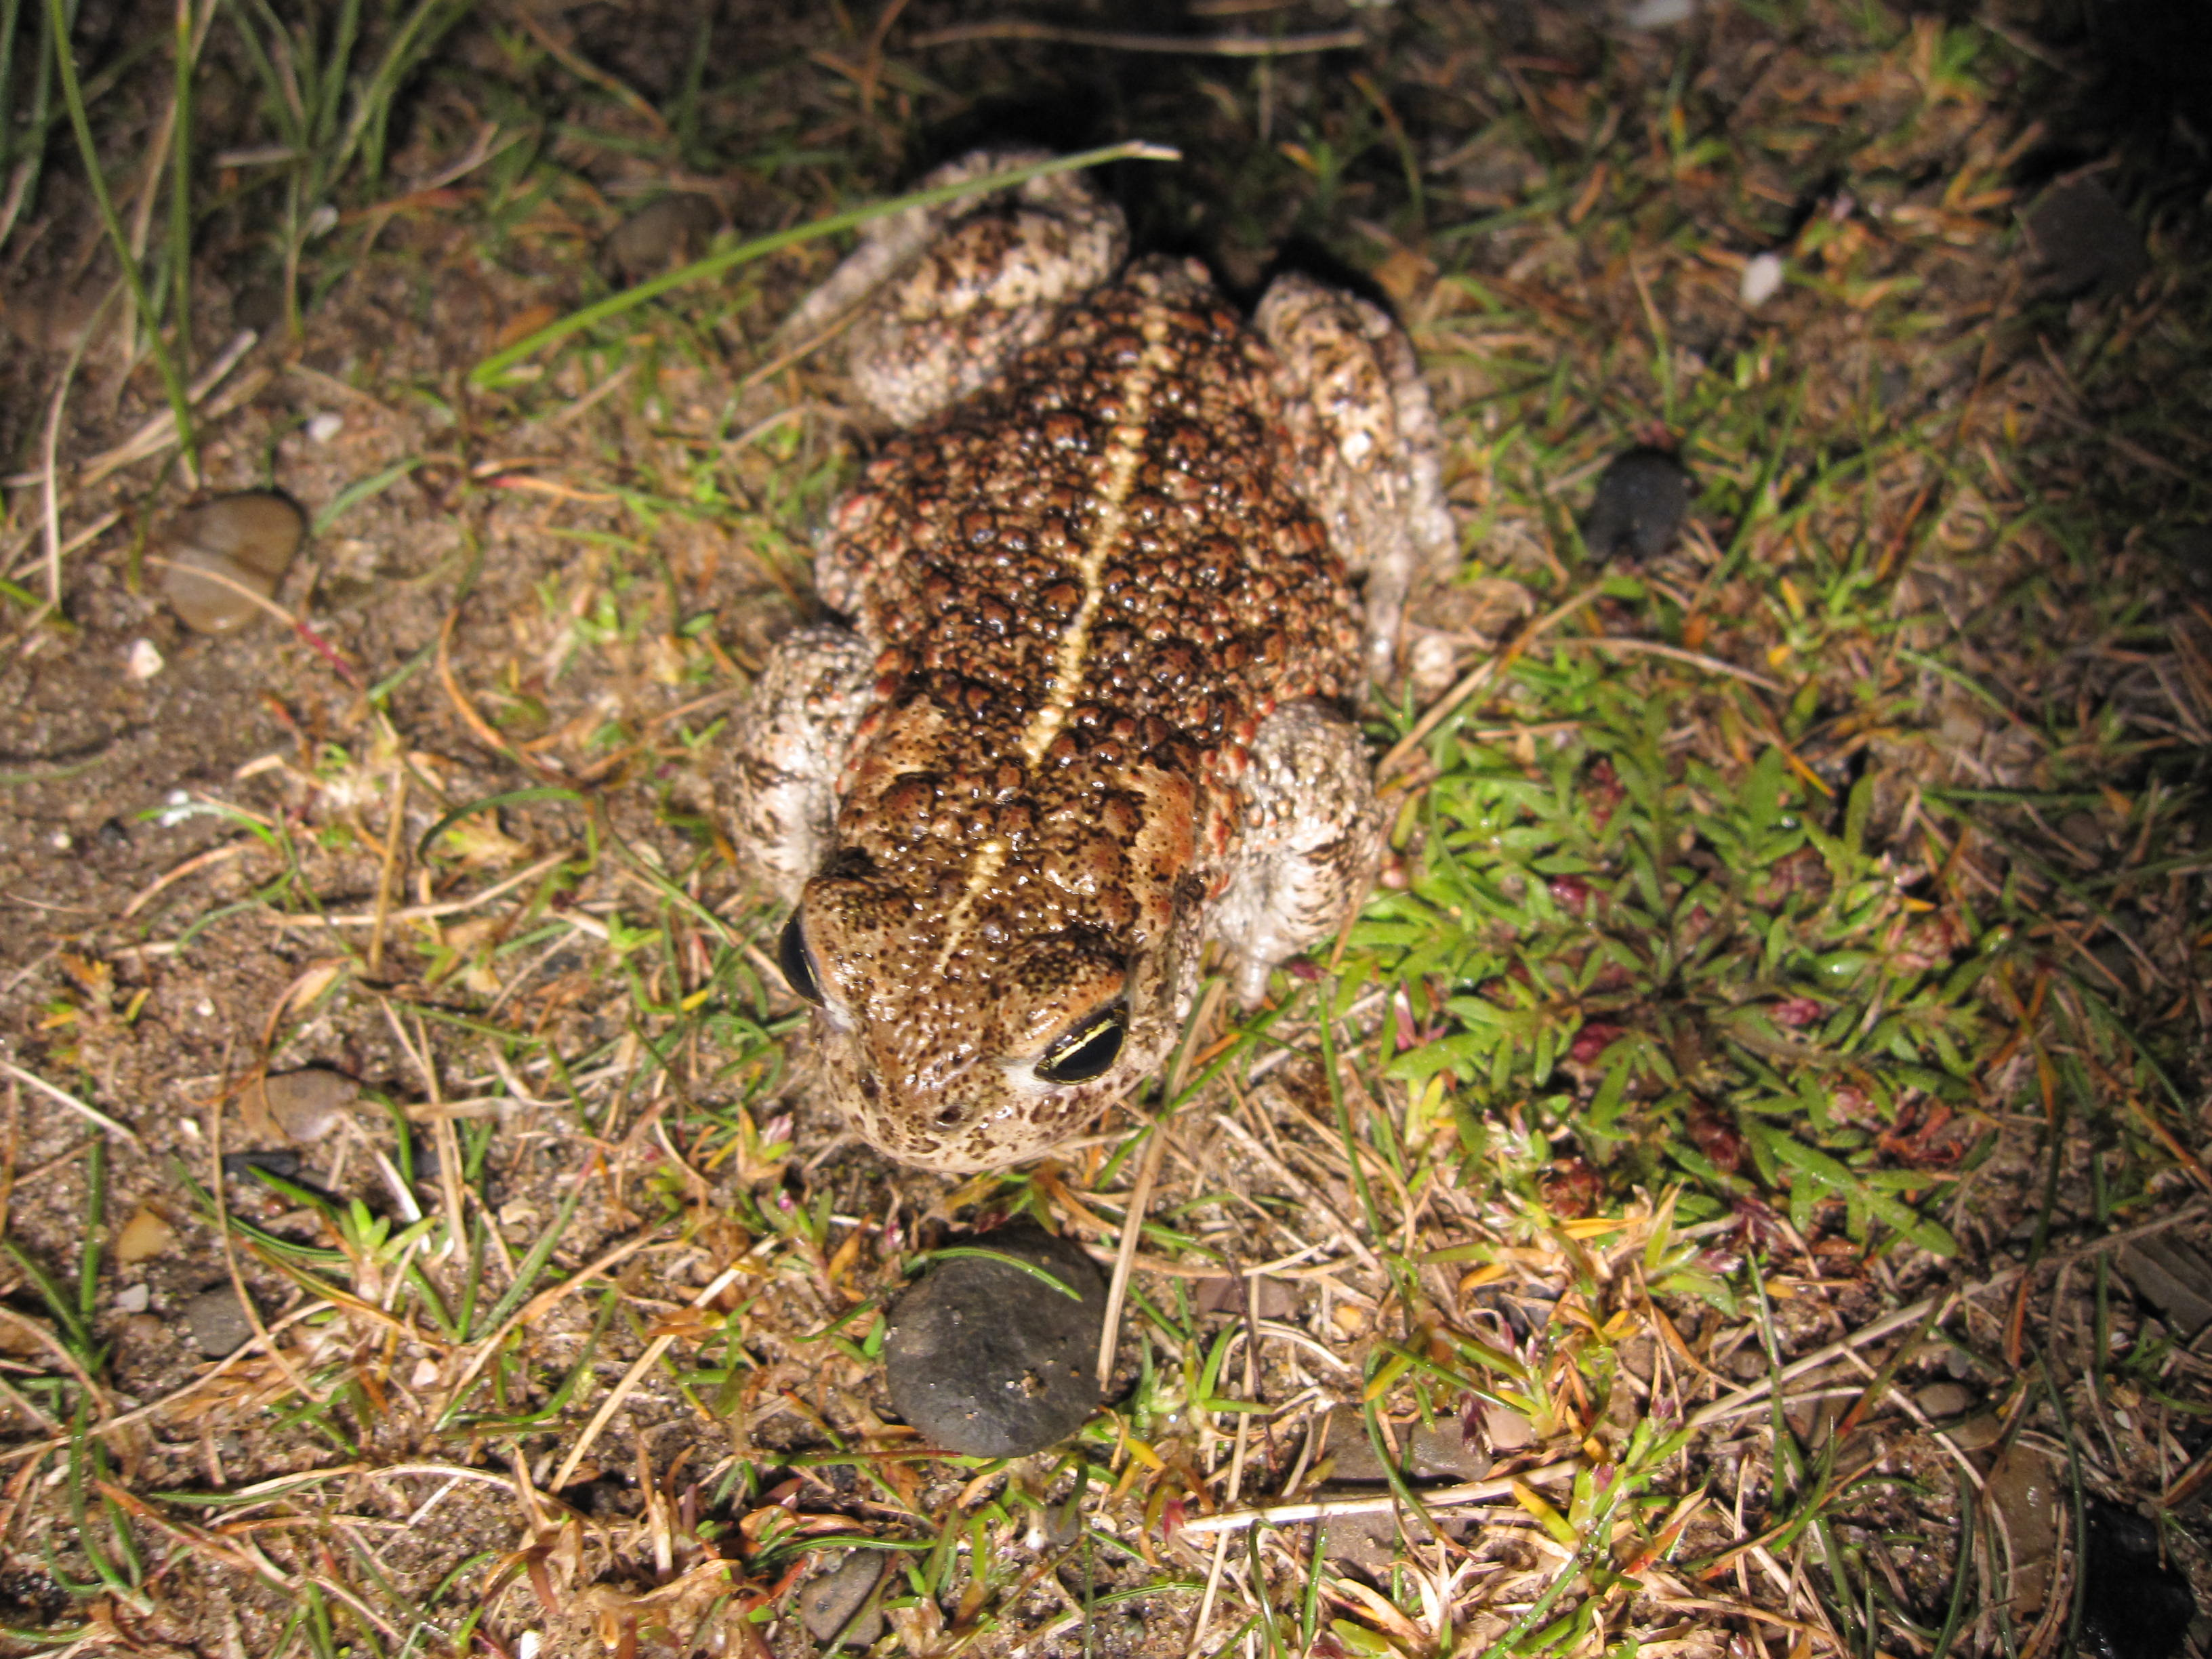 Natterjack toads have a bright yellow stripe down their backs.